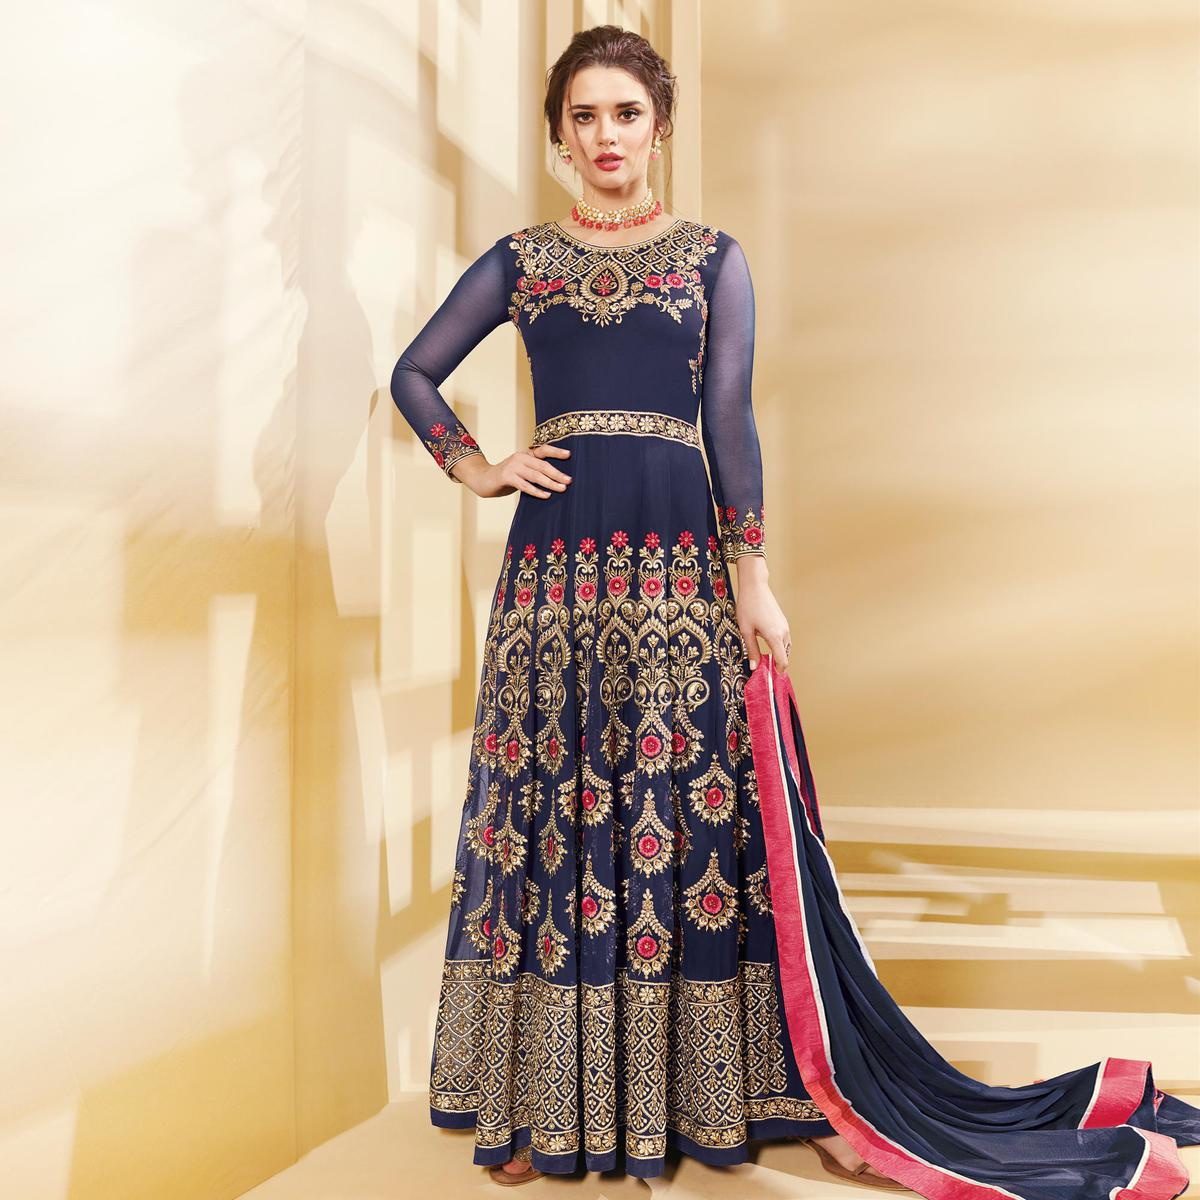 d9859b5b6b366 Buy Mesmerising Blue Colored Designer Embroidered Party Wear Georgette Anarkali  Suit for womens online India, Best Prices, Reviews - Peachmode